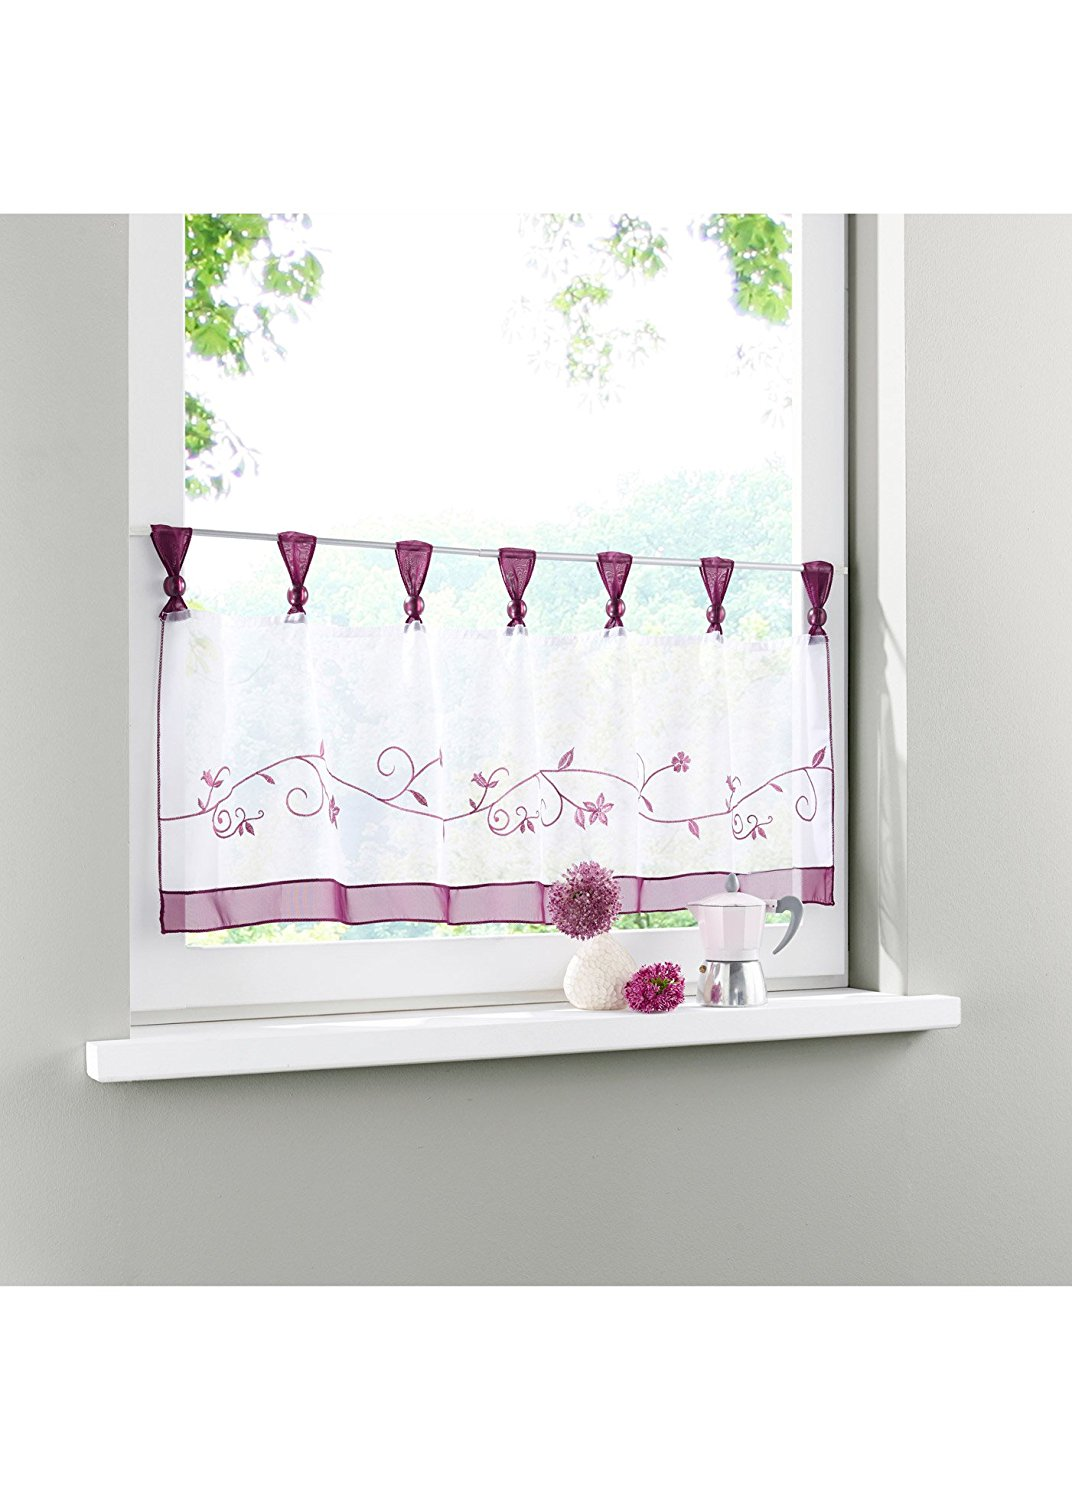 """Uphome 1pcs Cute Embroidered Floral Window Tier Curtain - Kitchen Tab Top Semi Sheer Curtain (48""""W x 18""""H, Purple)"""